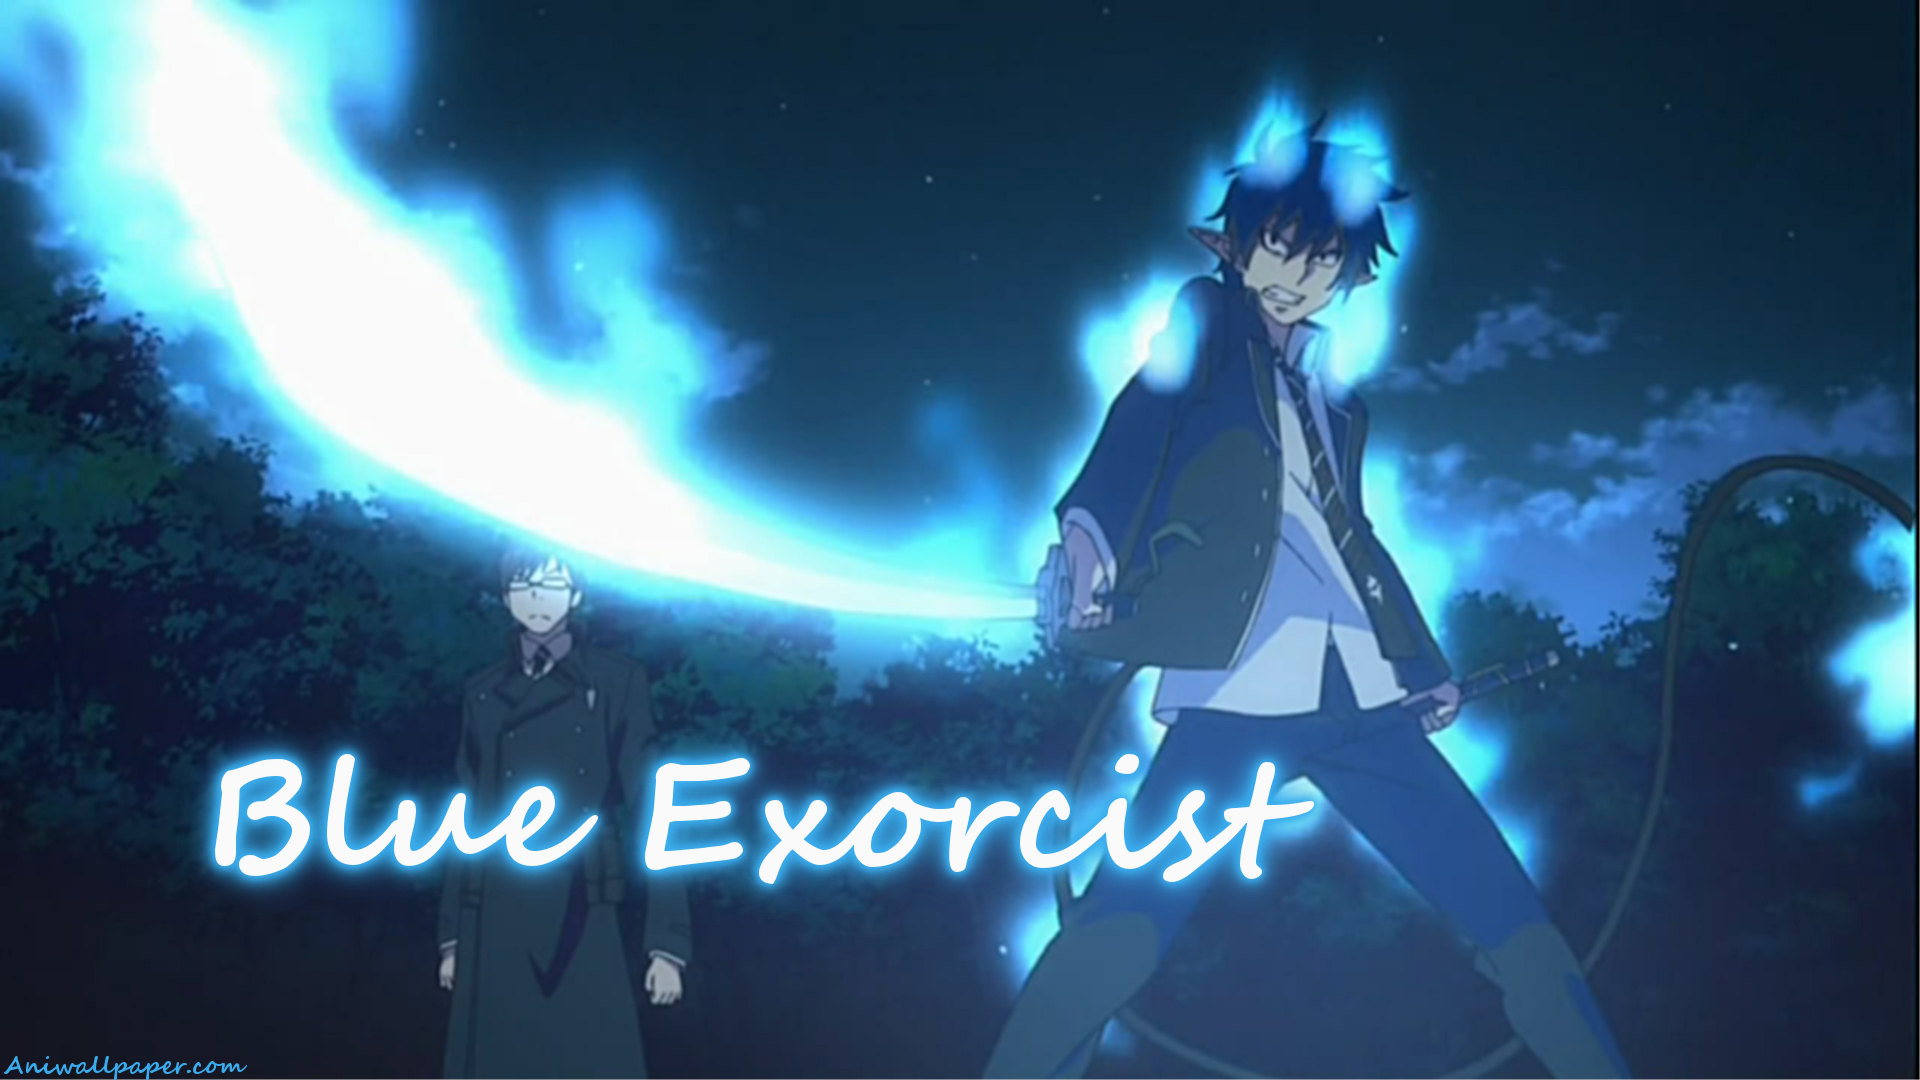 Raraboom Images Blue Exorcist Hd Wallpaper And Background Blue